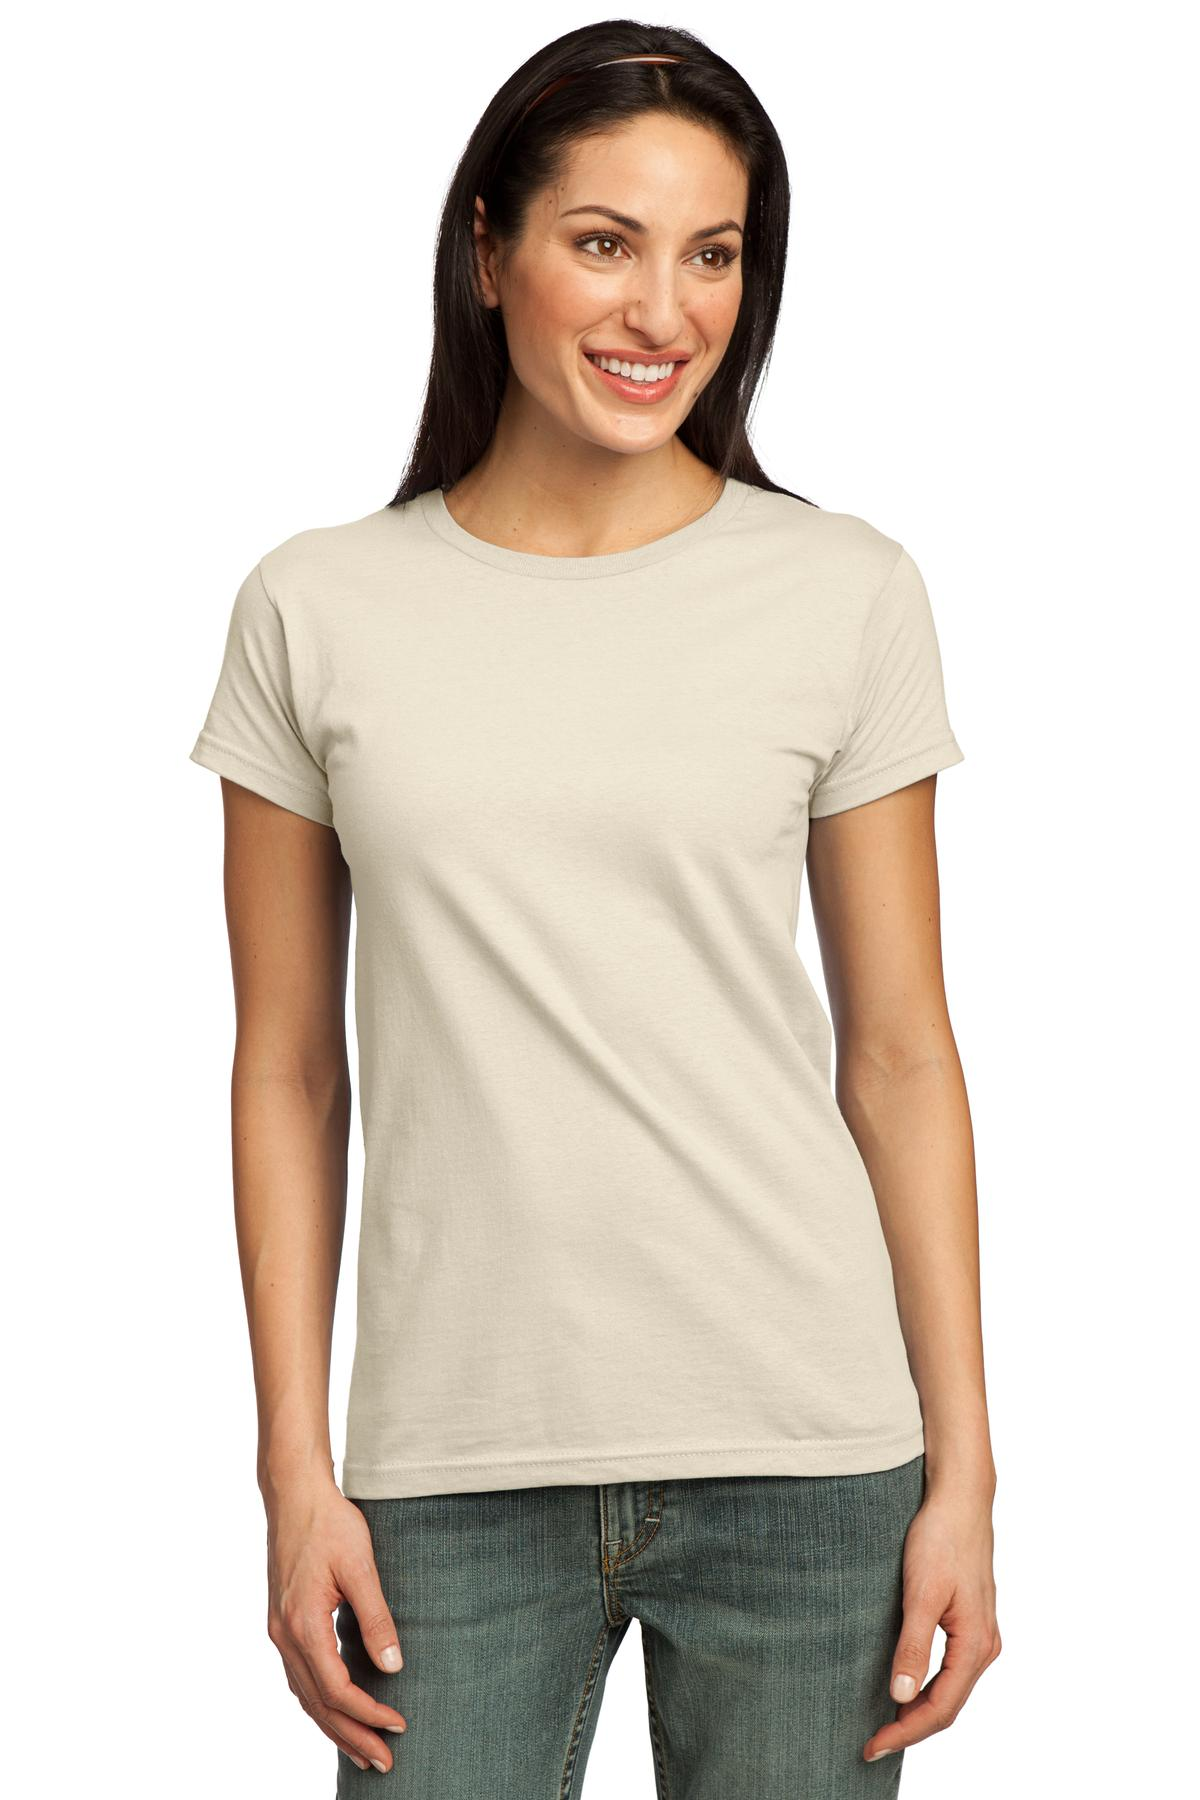 Closeout Port Company Ladies Organic Cotton T Shirt